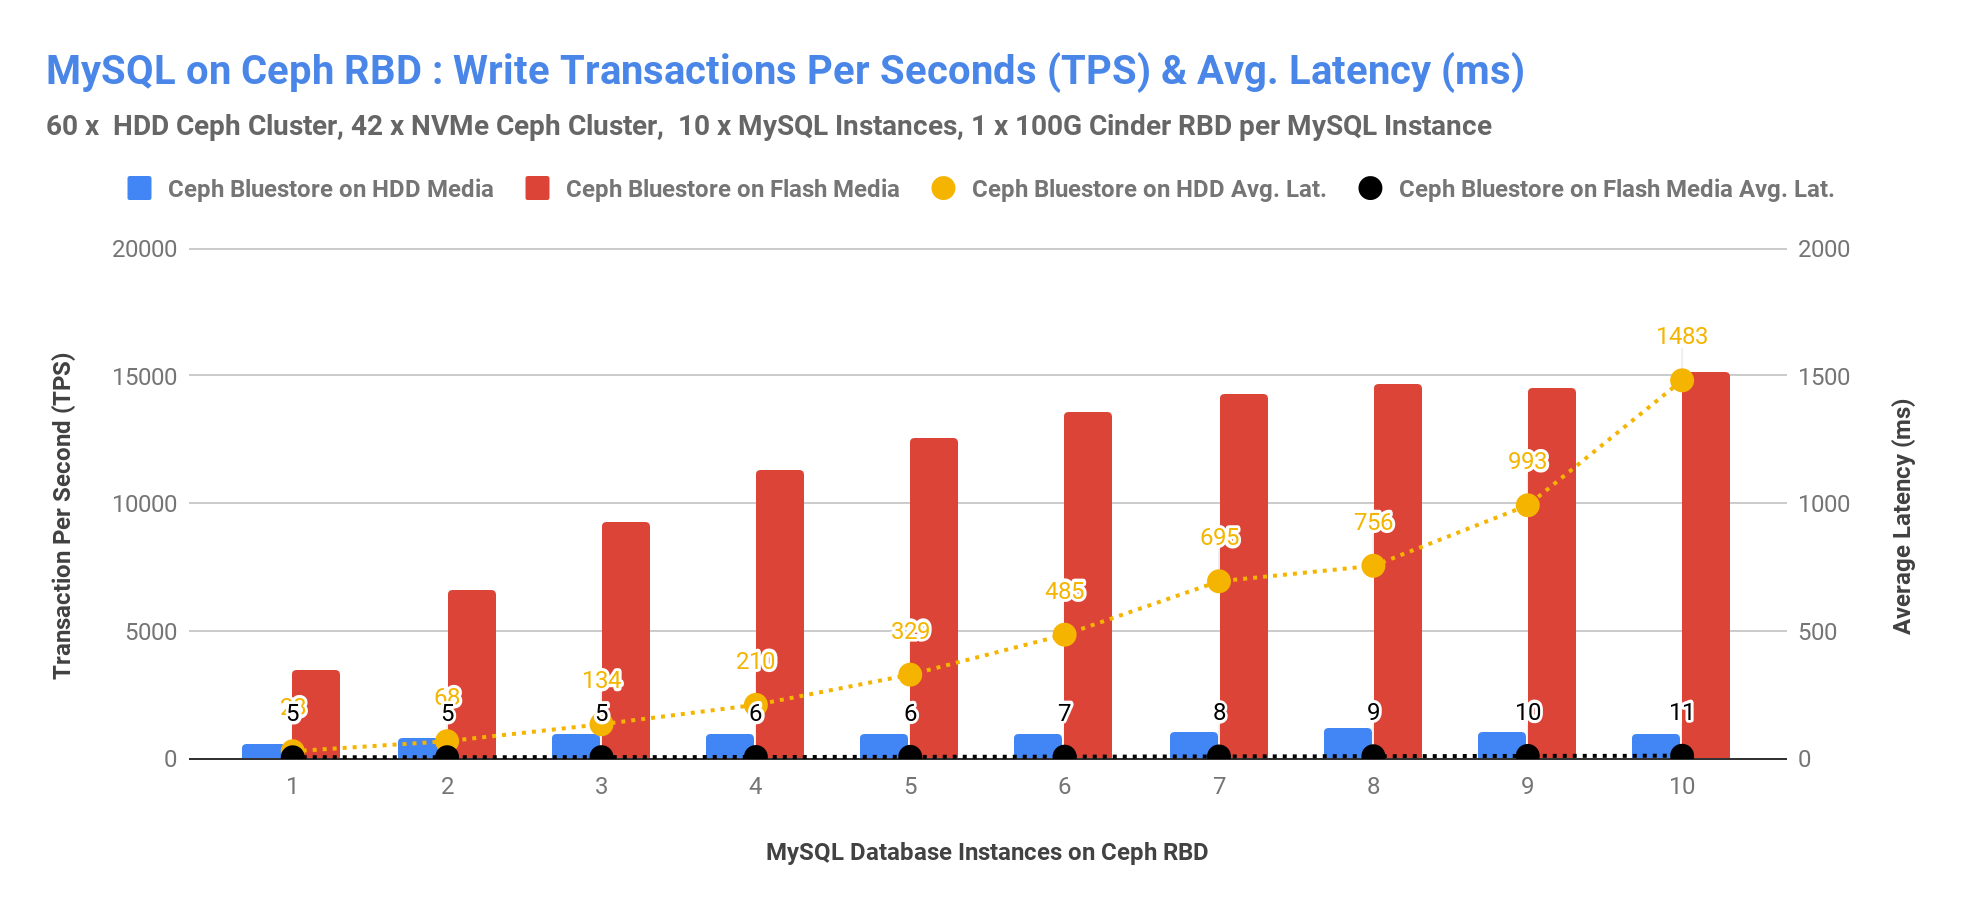 MySQL on Ceph RBD: Write Transactions Per Seconds (TPS) & Avg. Latency (ms)